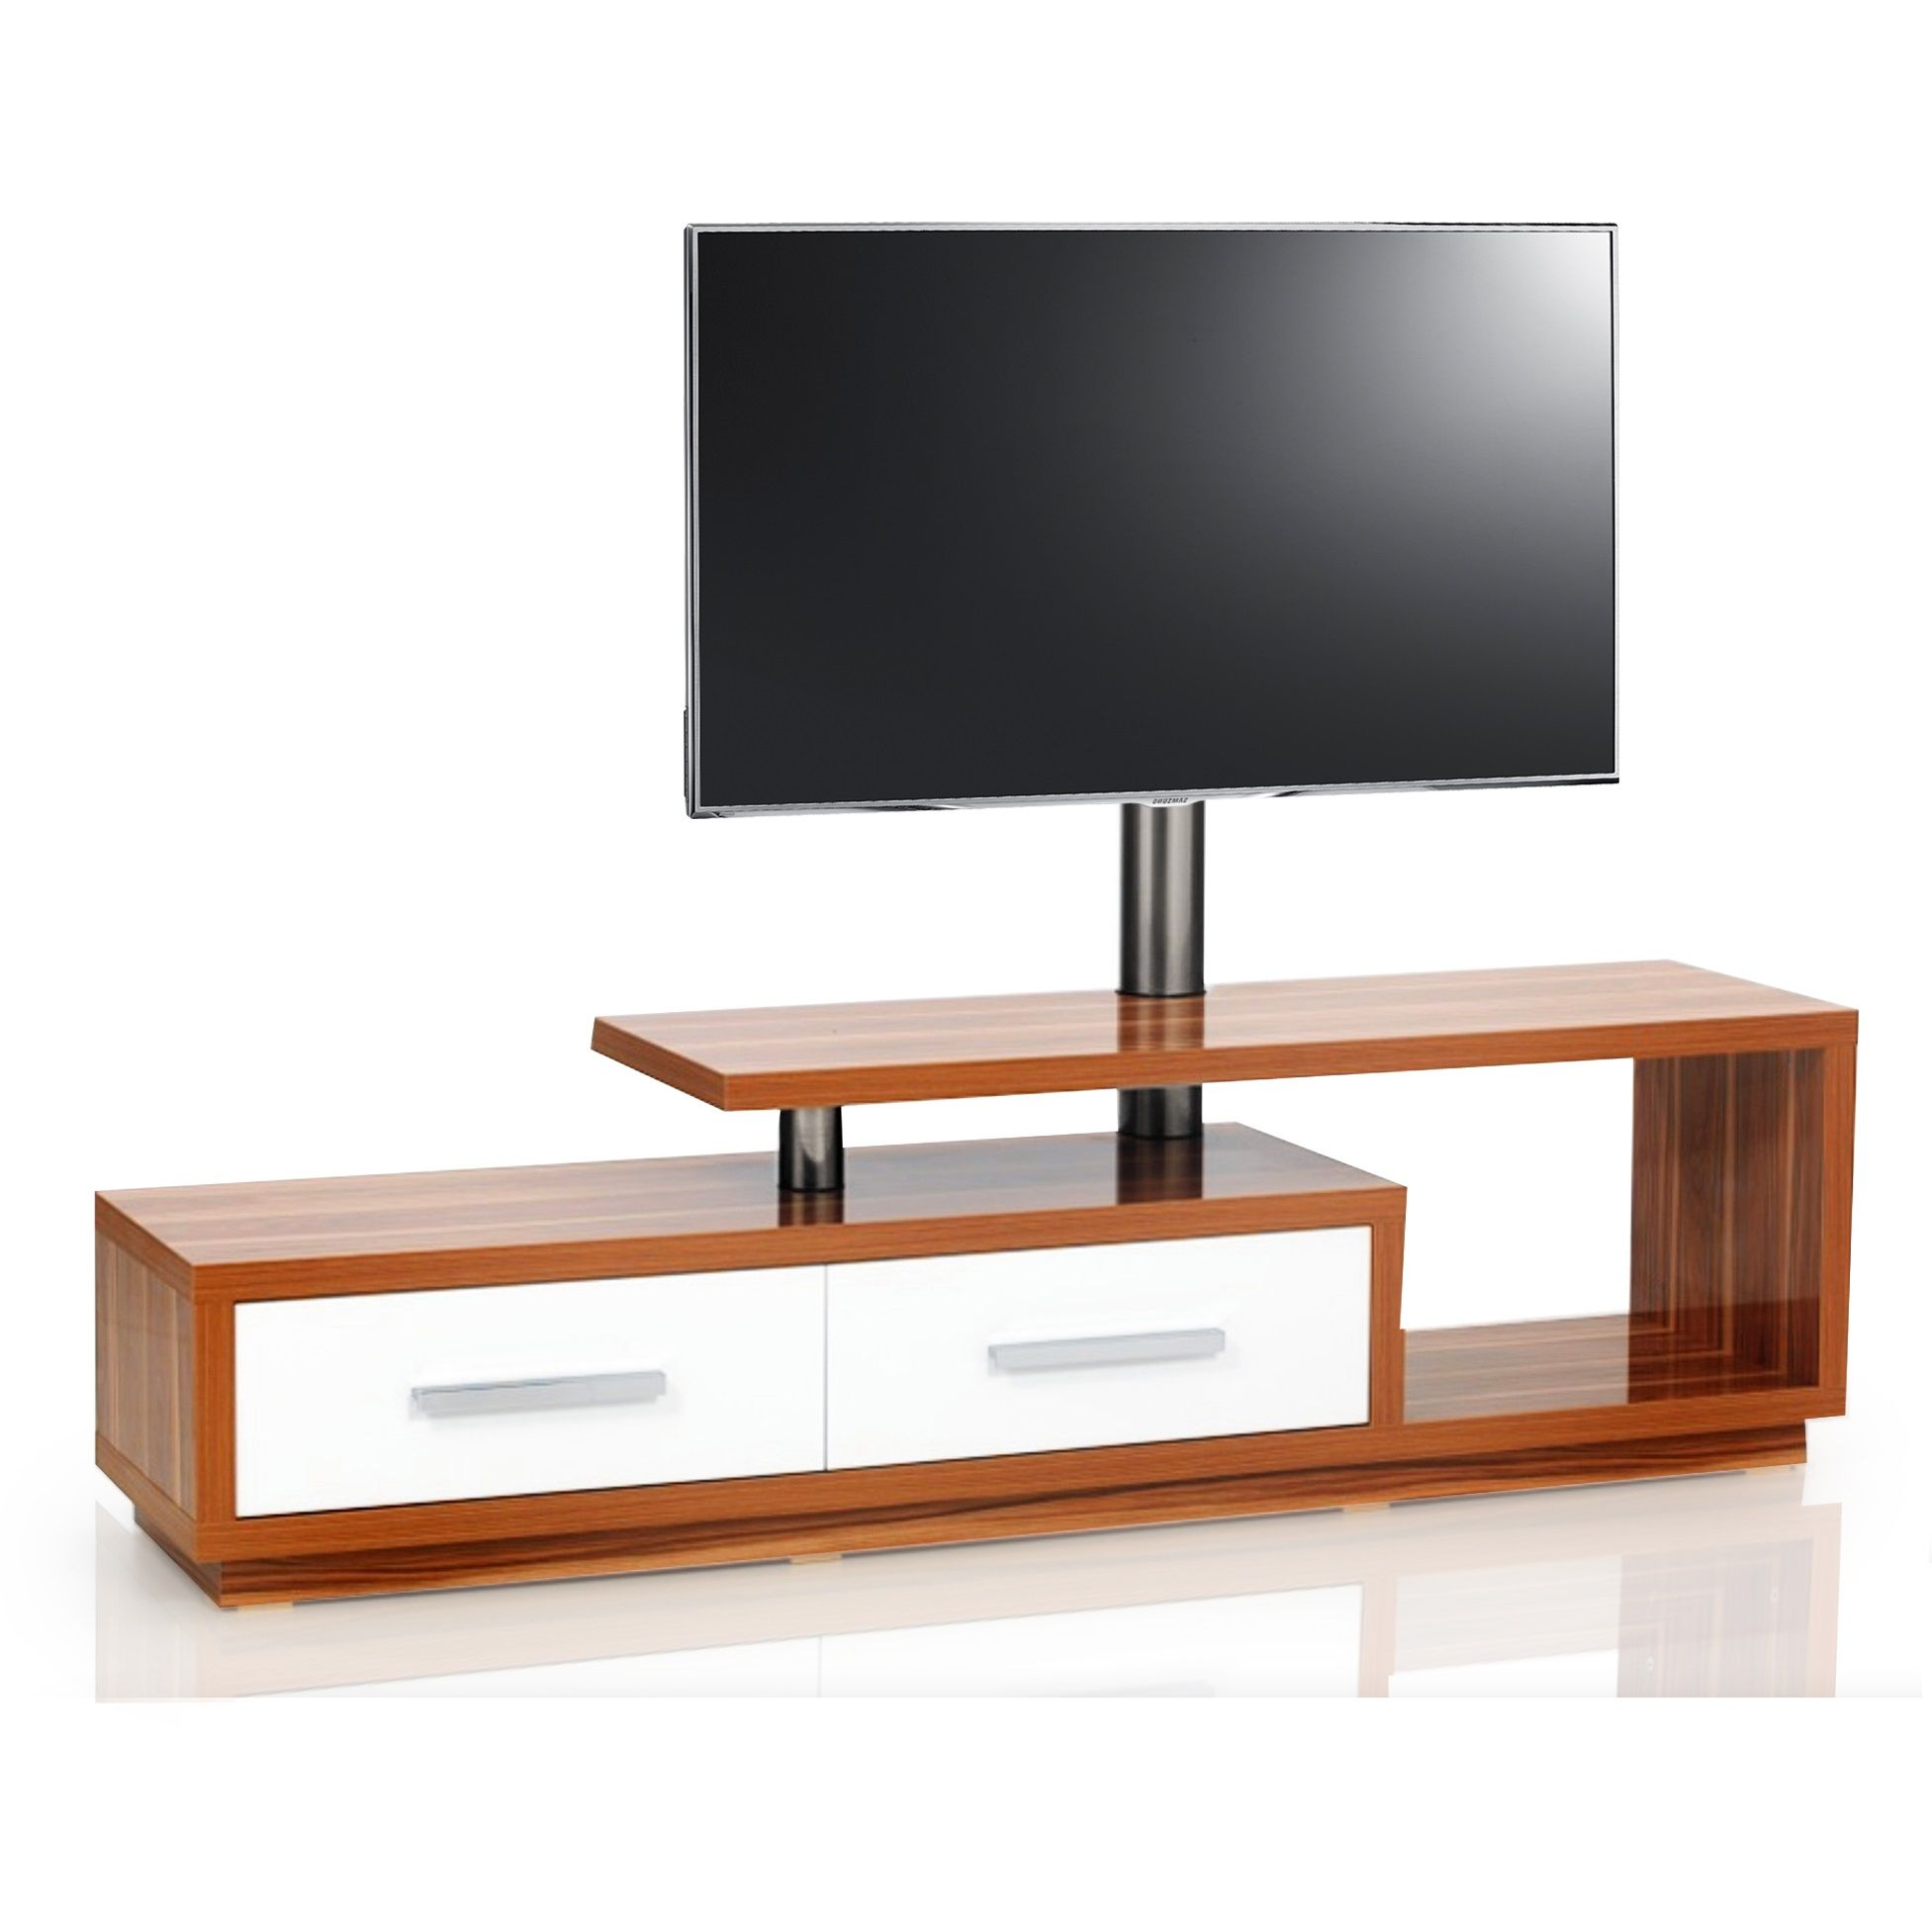 Stunning Tables De Television Contemporary Joshkrajcik Us  # Table Television Conforama